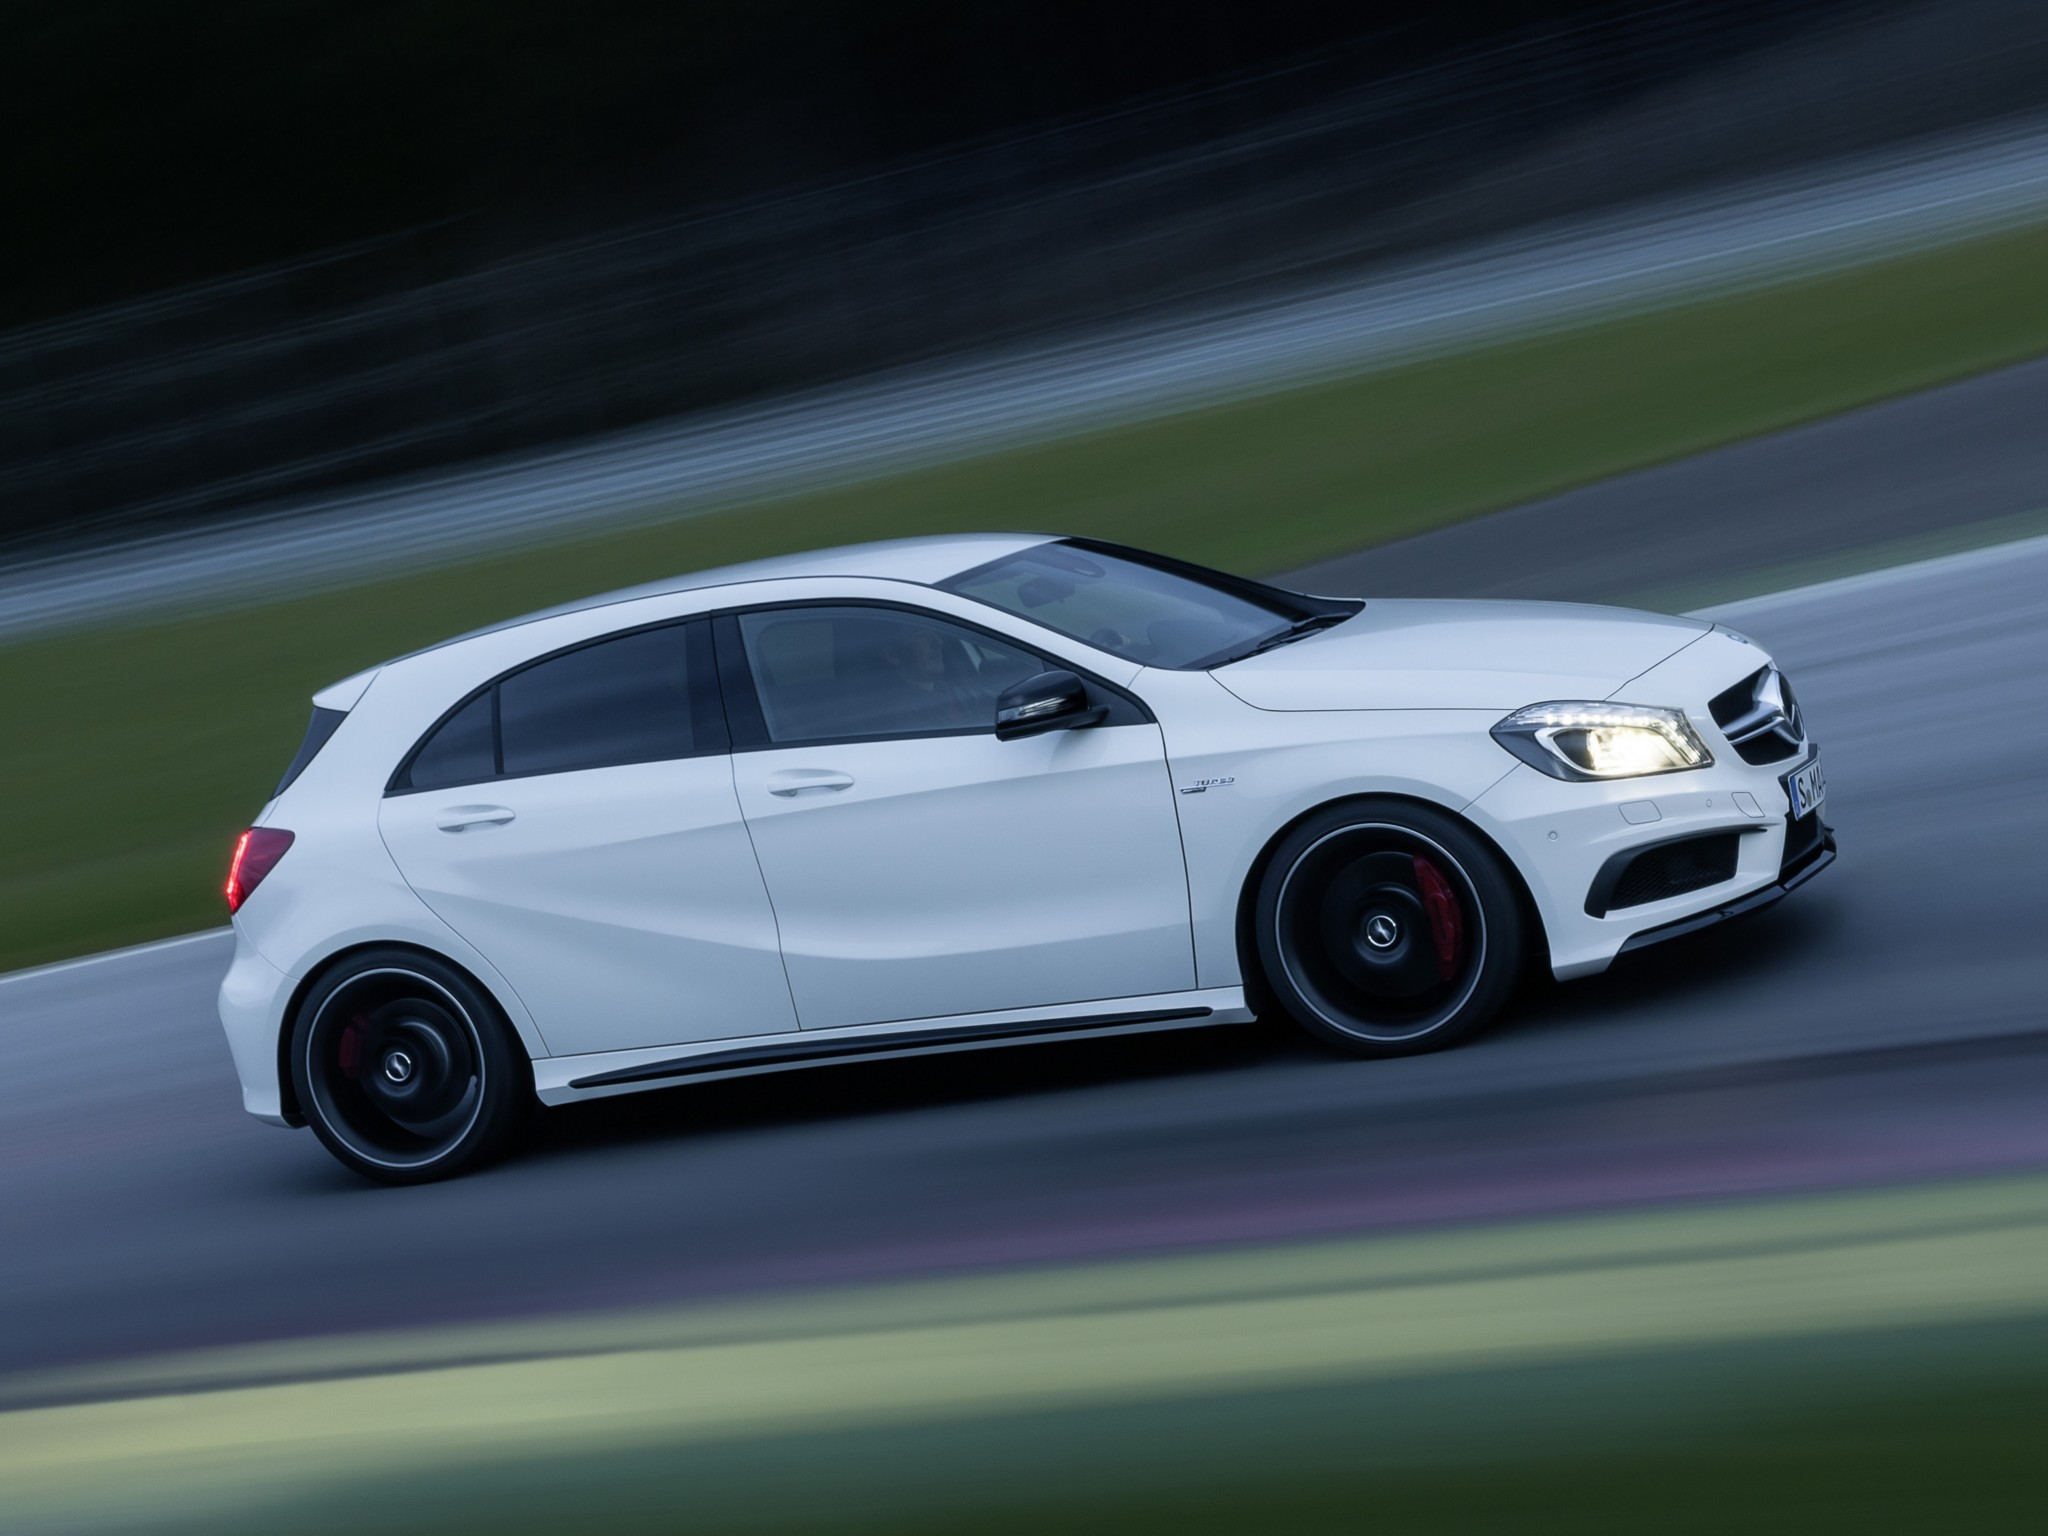 Mercedes benz a45 amg w176 specs 2013 2014 2015 for Mercedes benz a 45